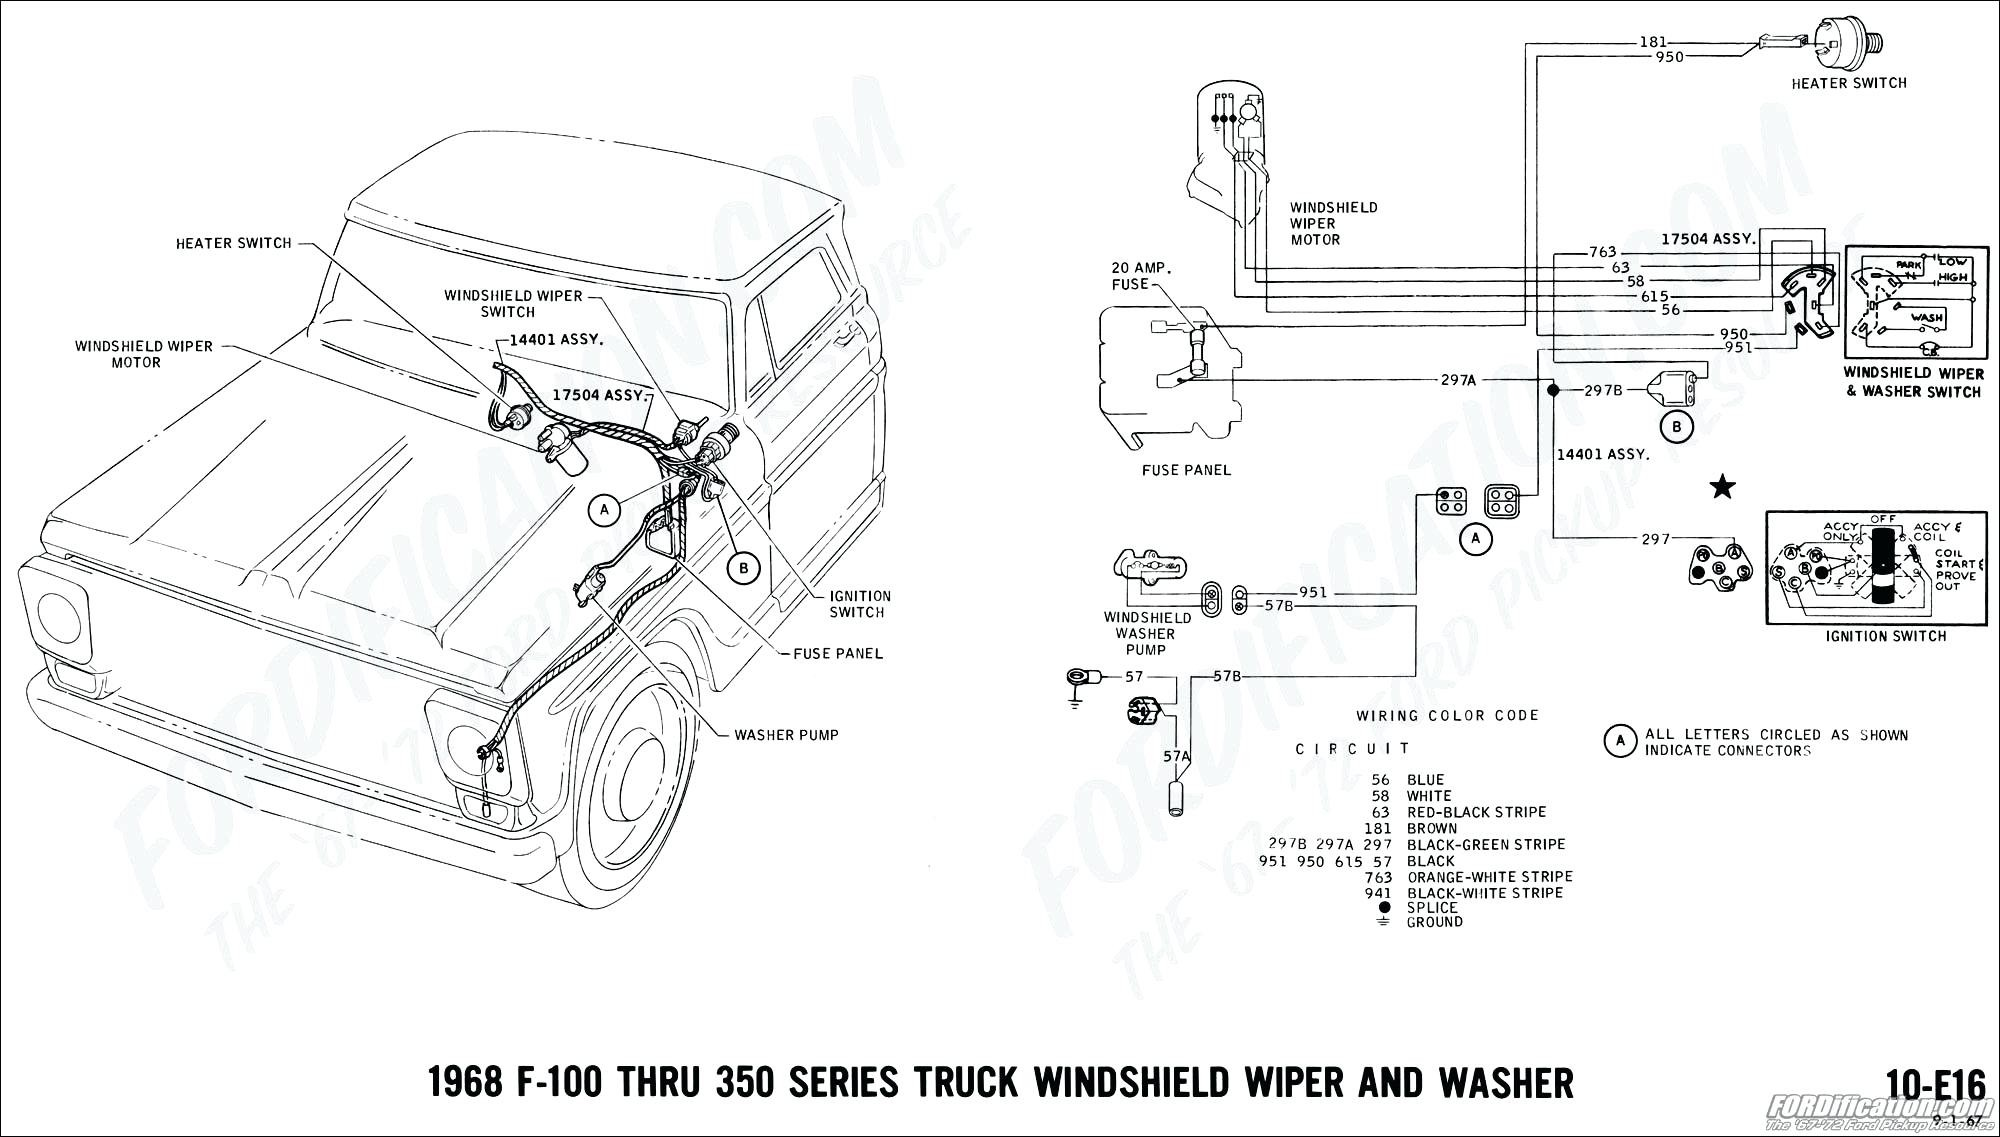 1992 Toyota Pickup Fuse Box Diagram Wiring Library 86 Pu Schematics Engine 1986 Stereo Pin Assignment Main Of